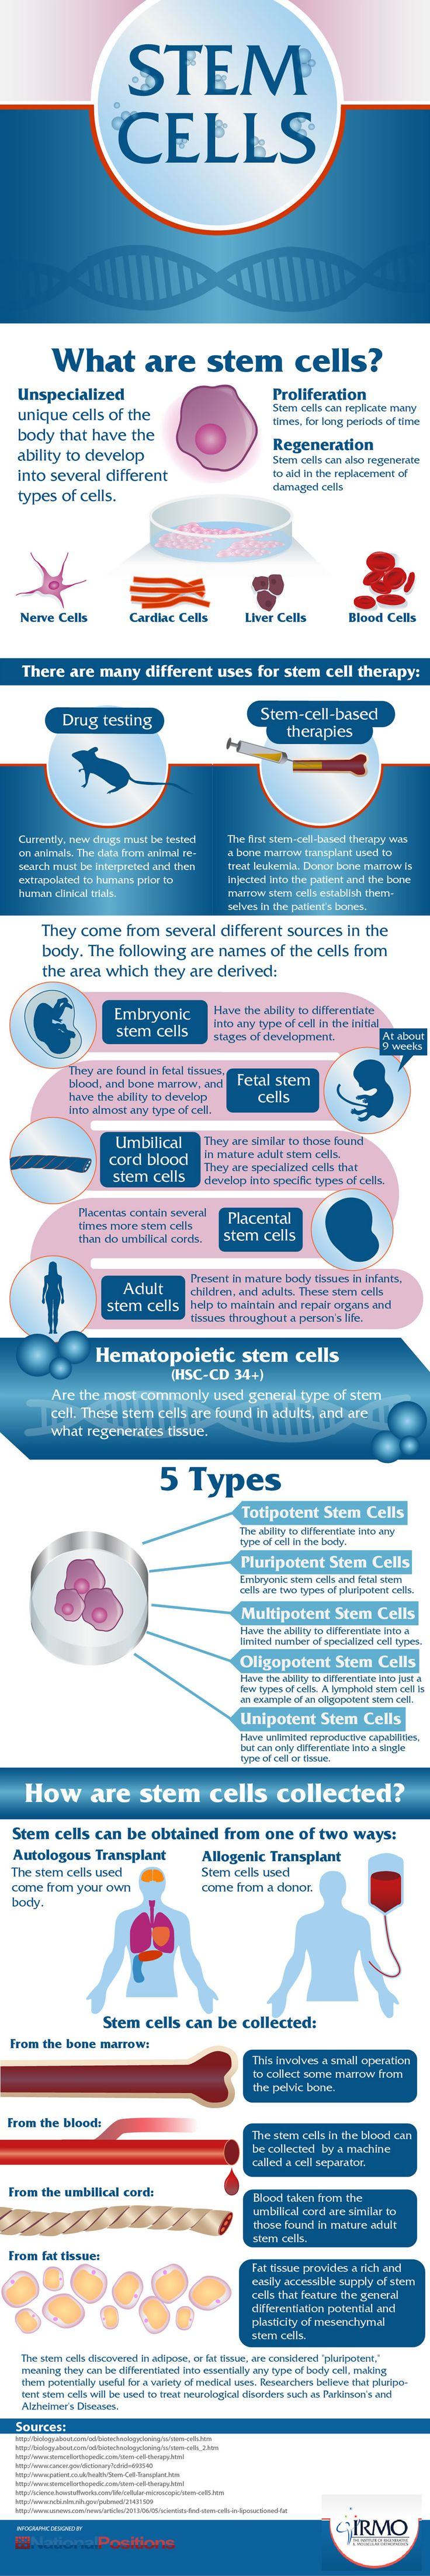 INFOGRAPHIC: NOT ALL STEM CELLS ARE CREATED EQUAL [Stem Cells: http://futuristicnews.com/tag/stem-cells/]